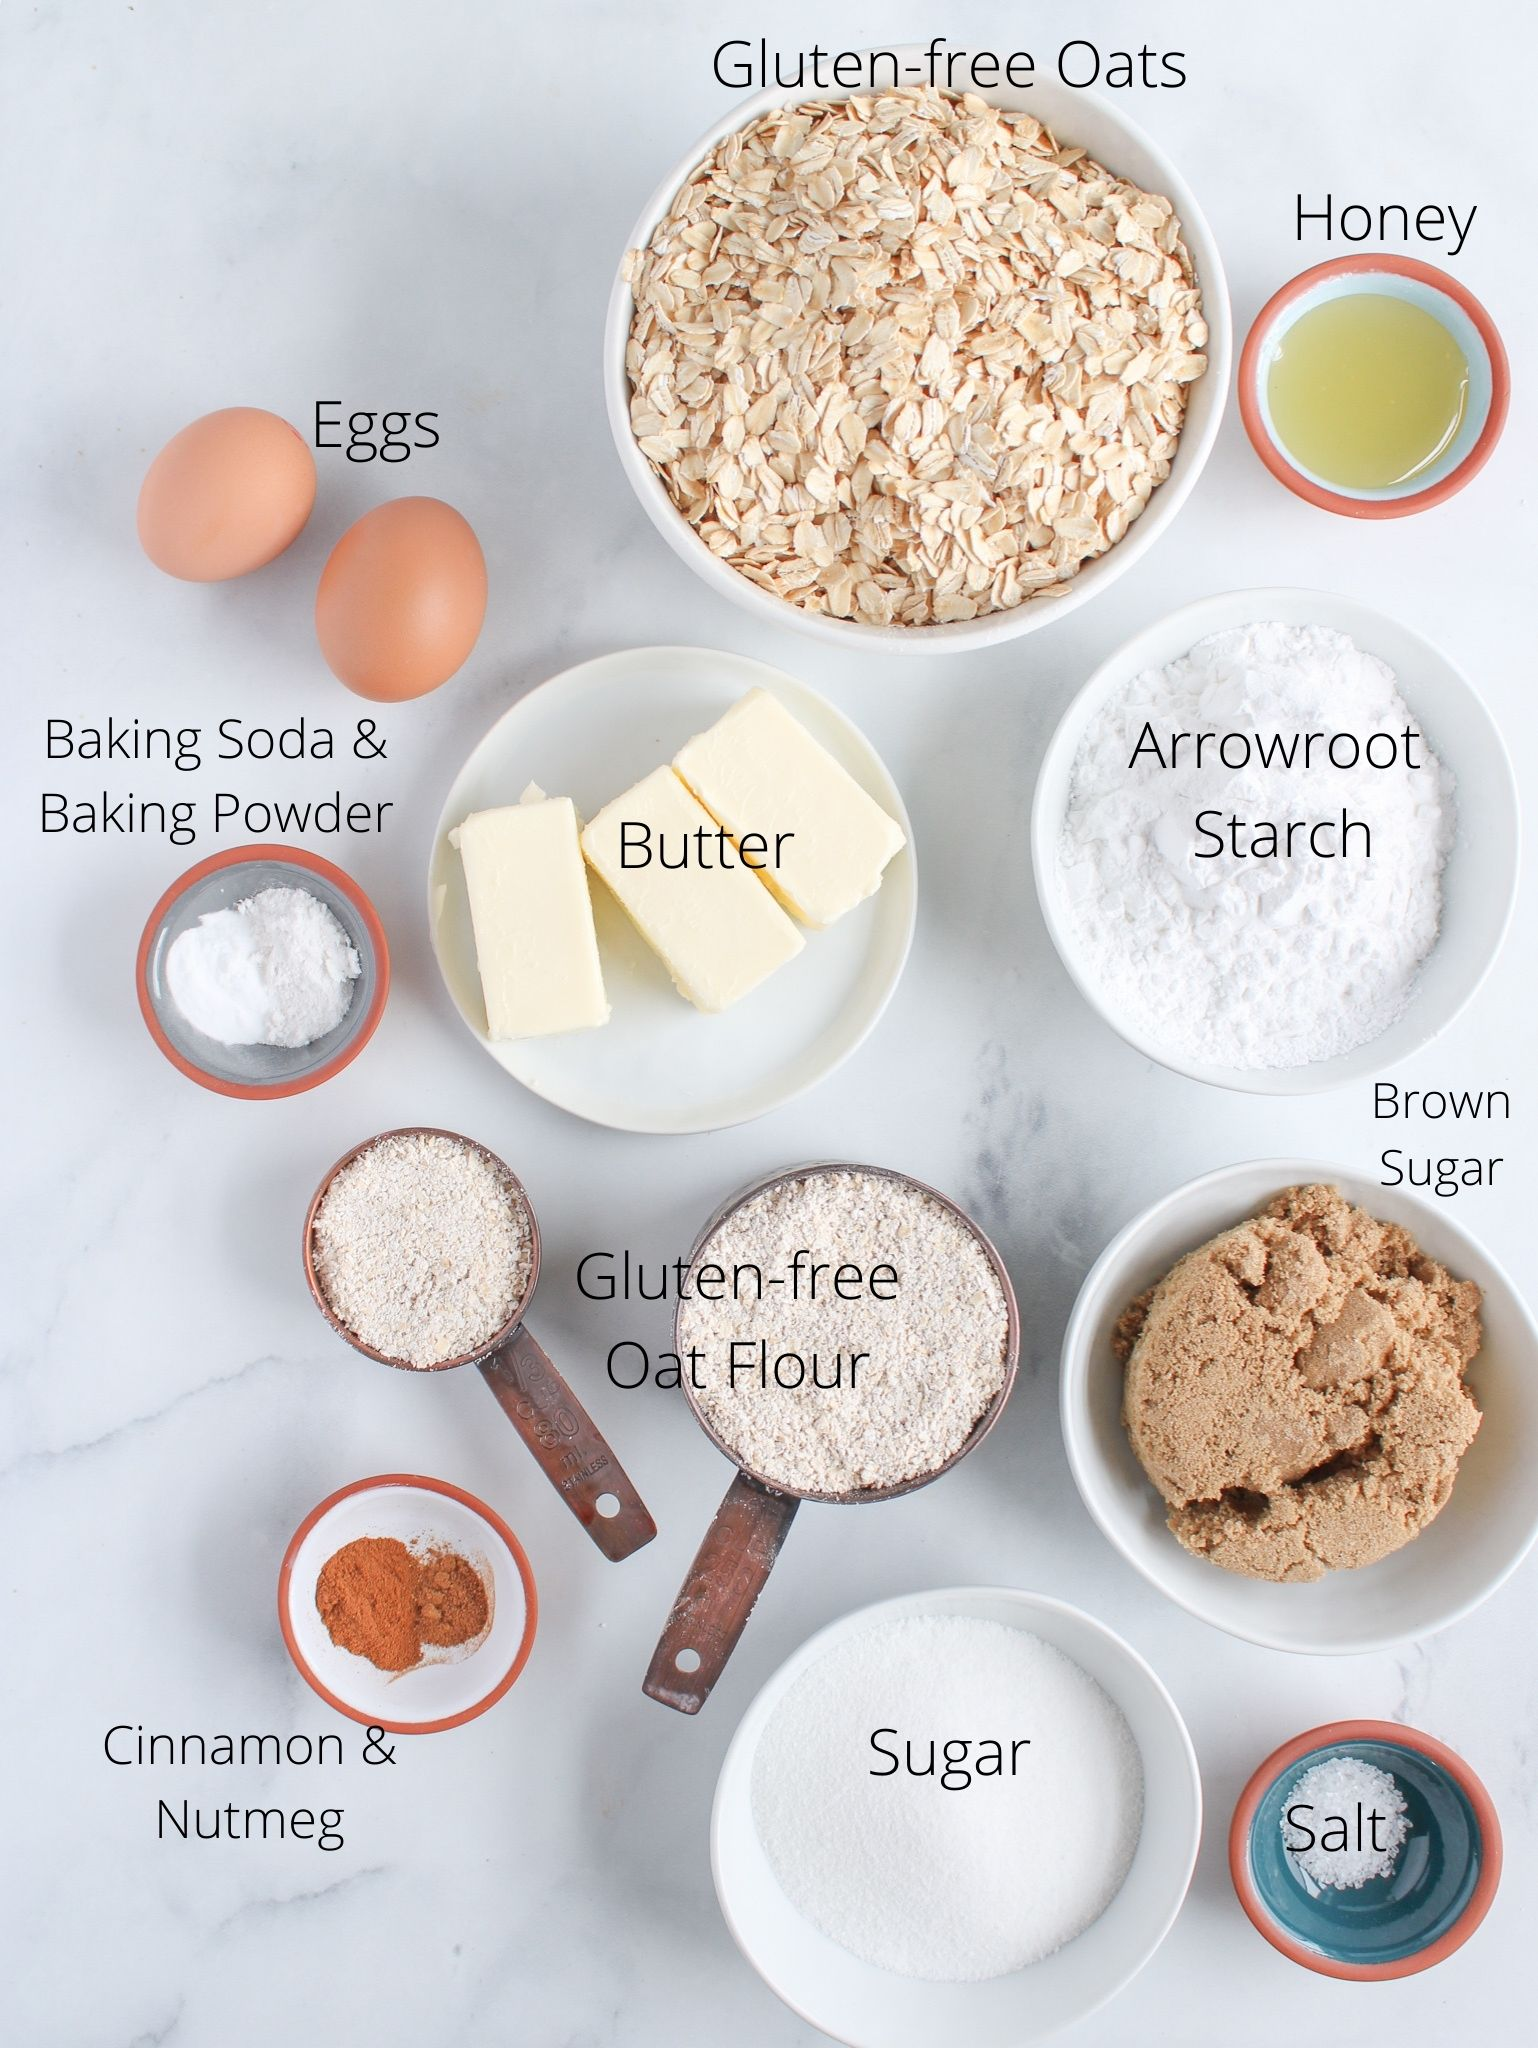 Gluten-free oatmeal cookie ingredients laid out including gluten free oats, oat flour, arrowroot starch, honey eggs, butter, sugar, brown sugar, baking soda, baking powder, cinnamon, nutmeg and salt.